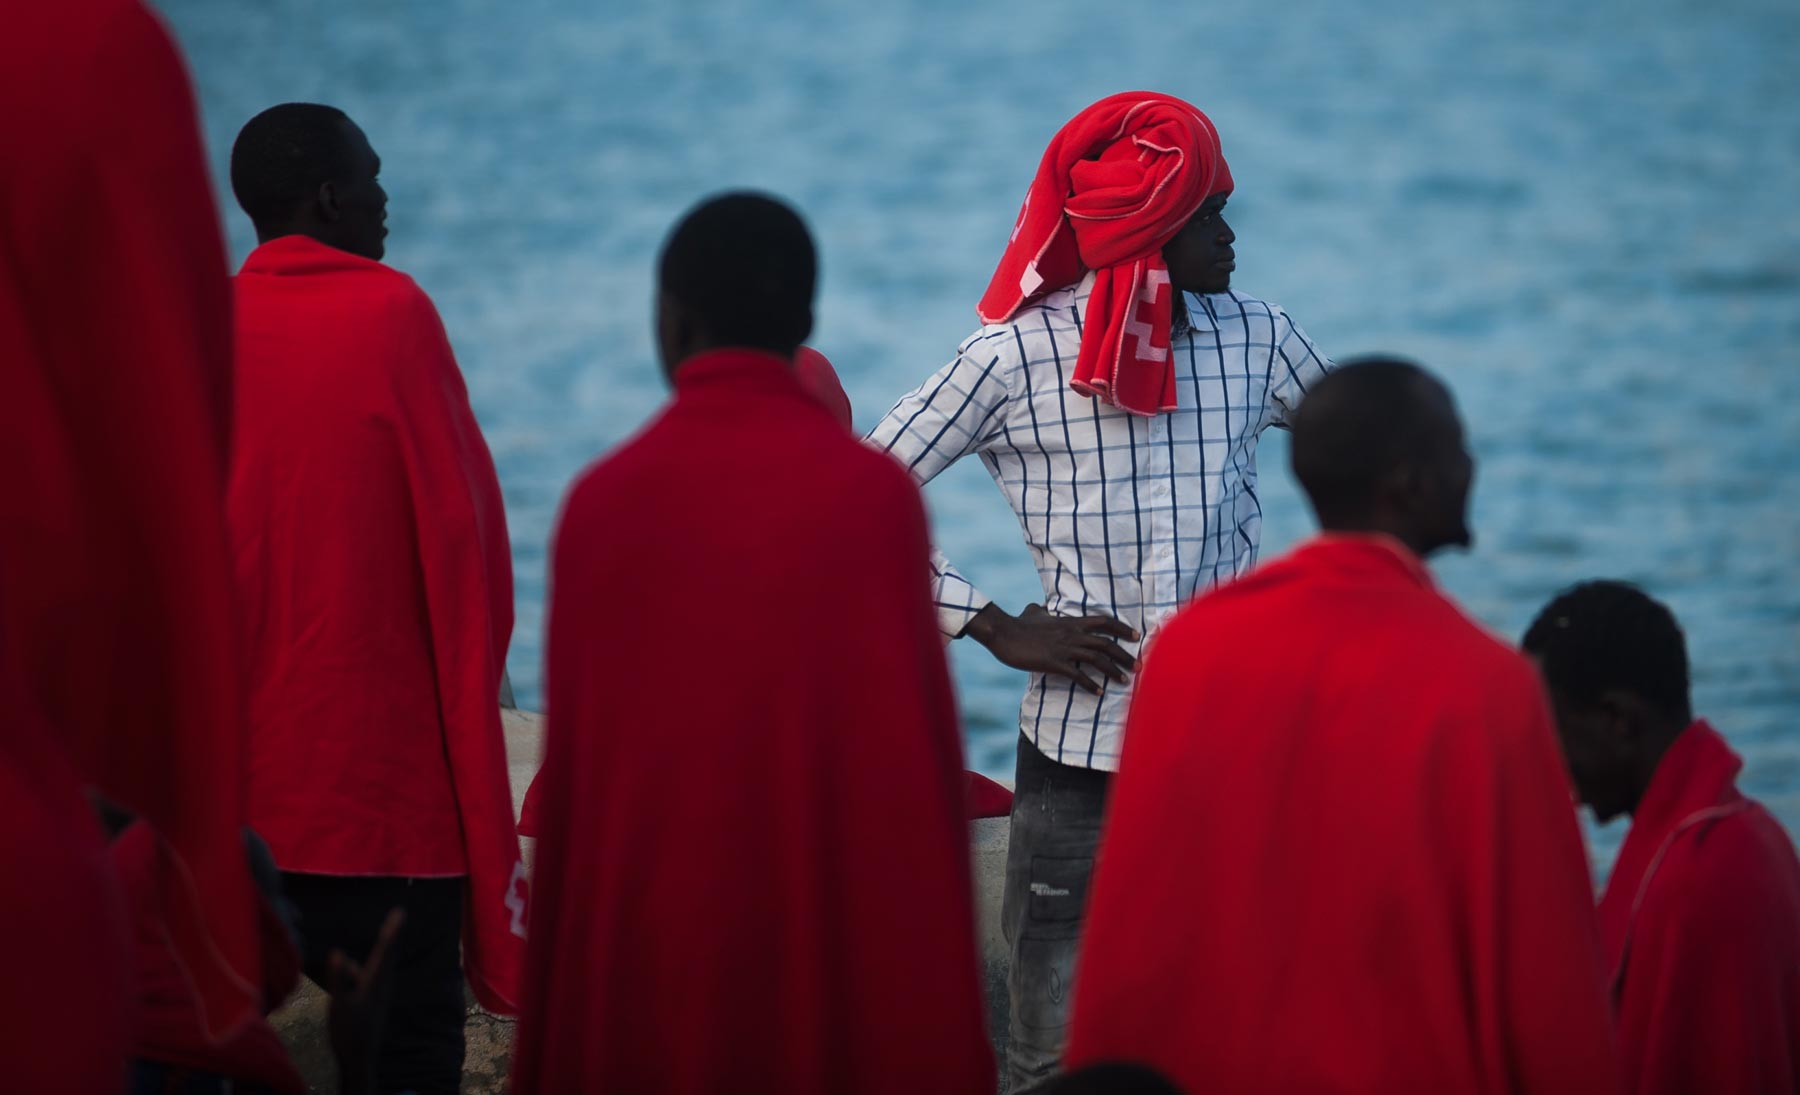 Migrants rescued from the Mediterranean (Photo: Jesus Merida via Getty)